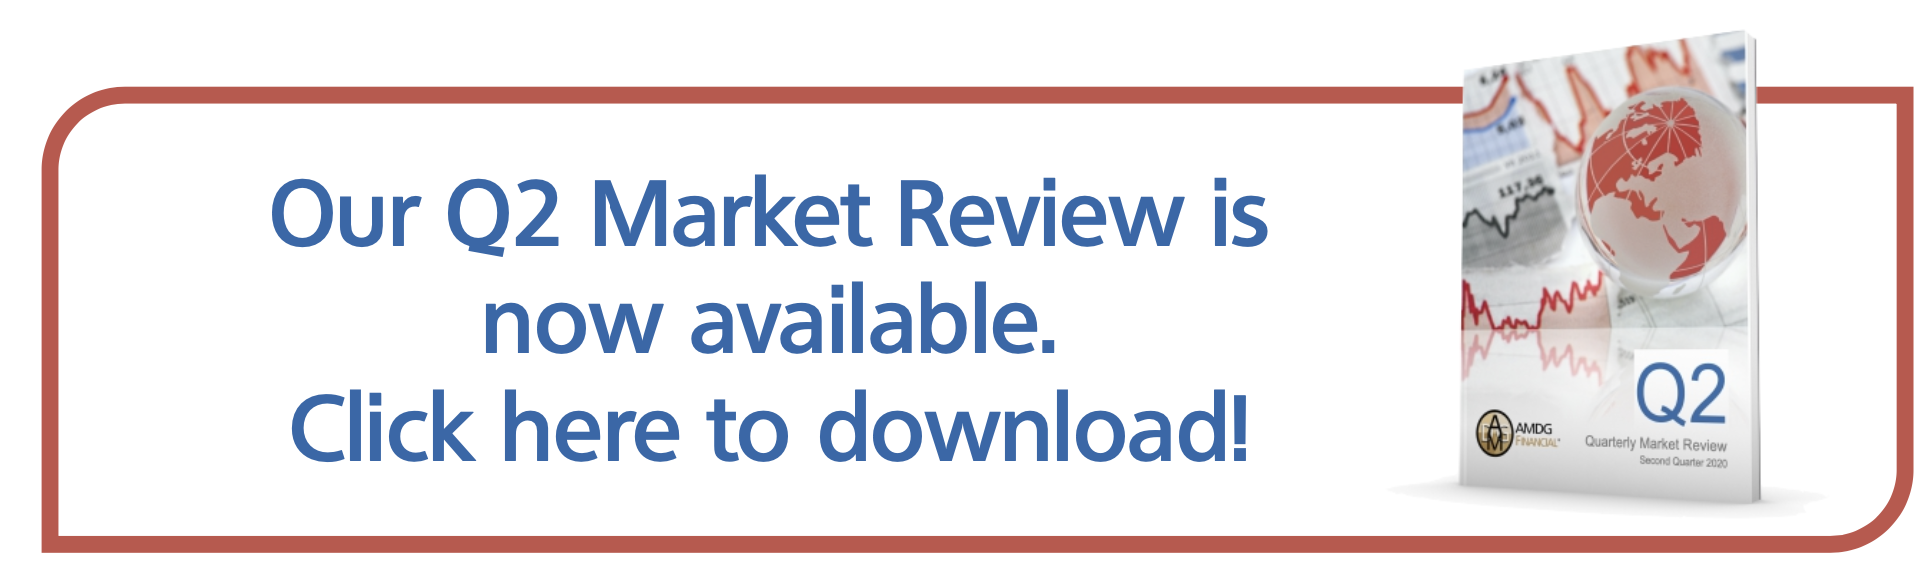 AMDG Financial's Q2 2020 Market Review is Available!